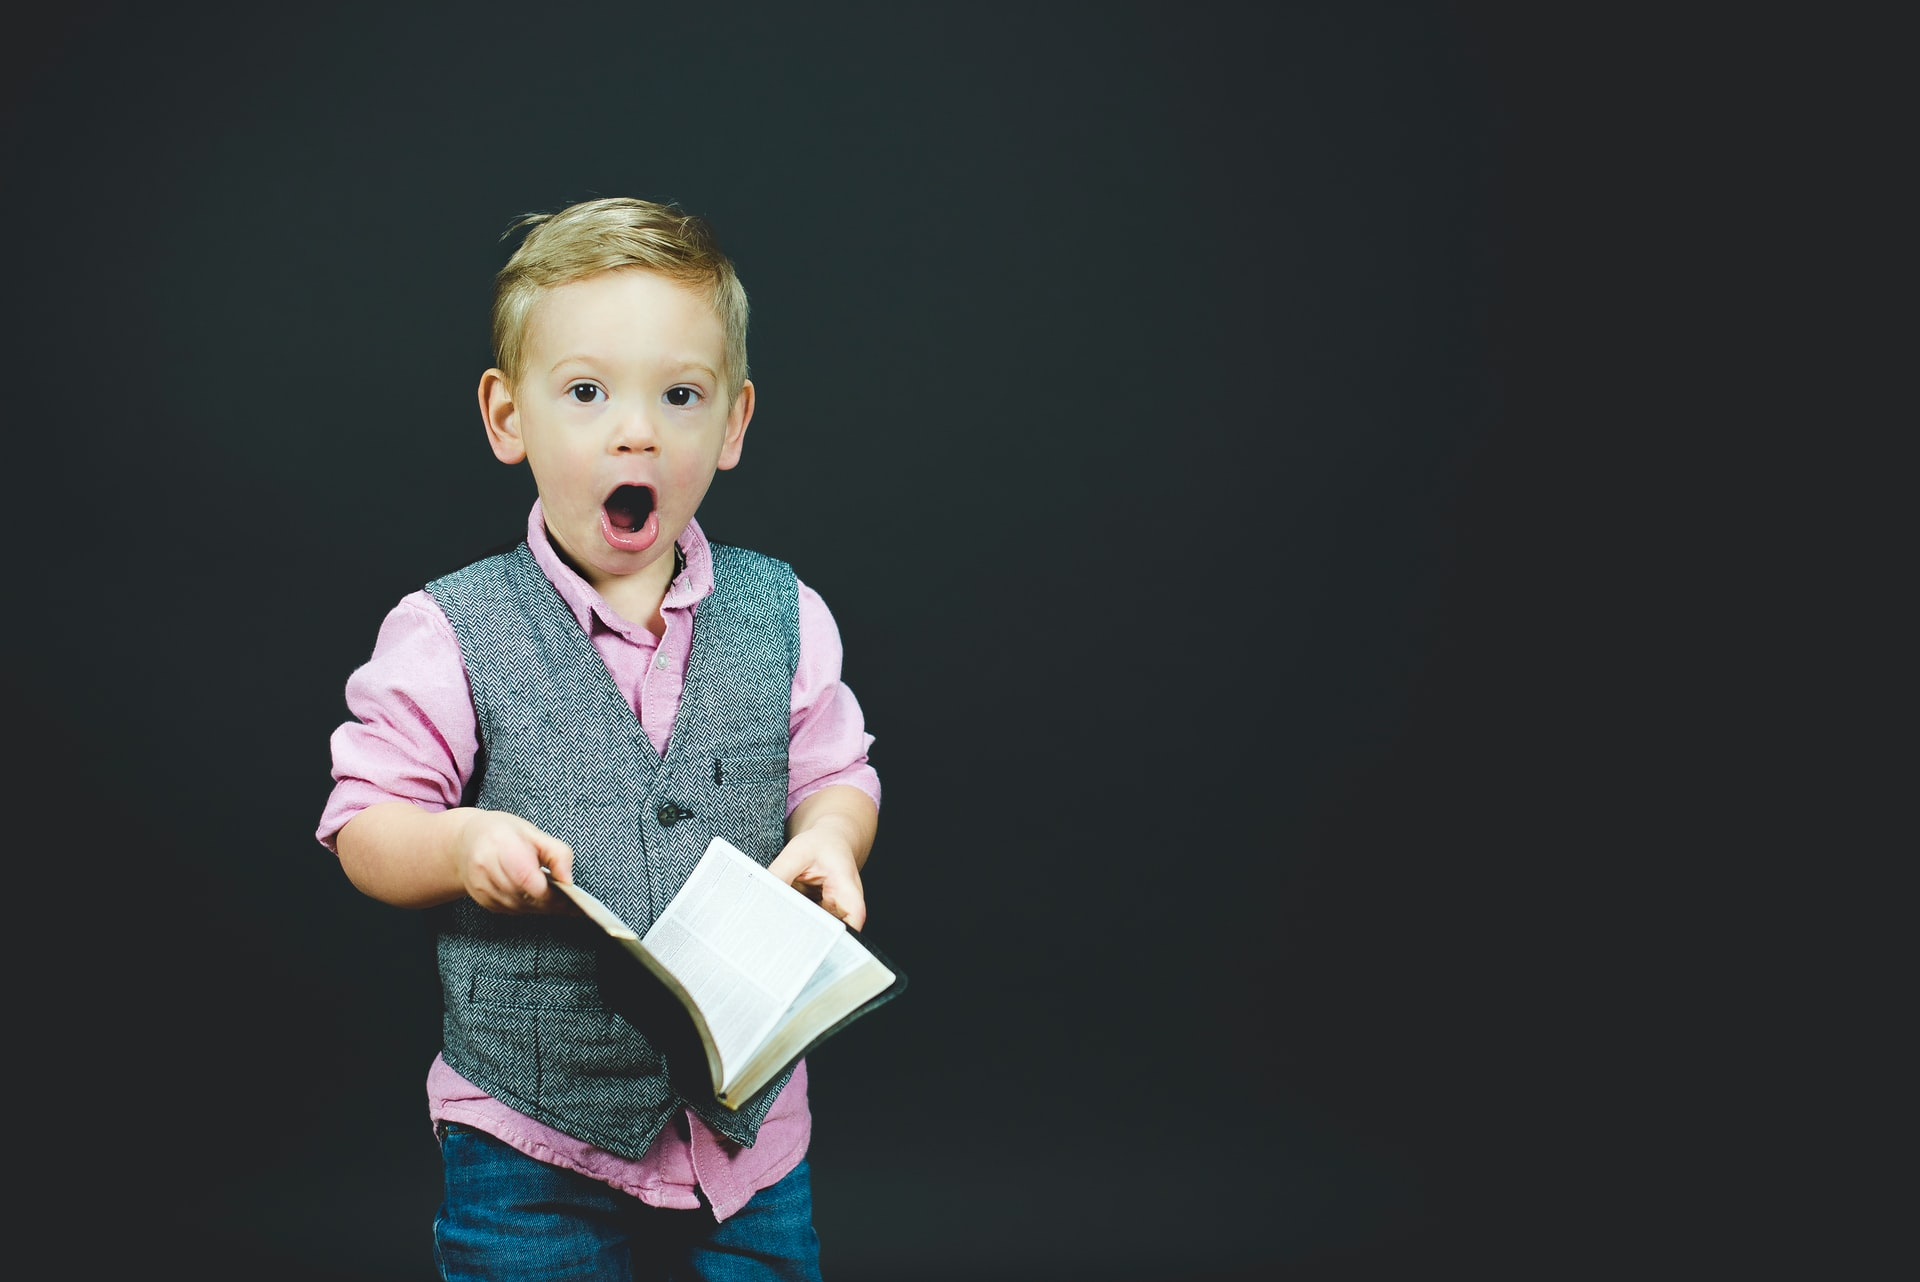 Boy in pink shirt with gray vest reacts with shock to open book in his hands